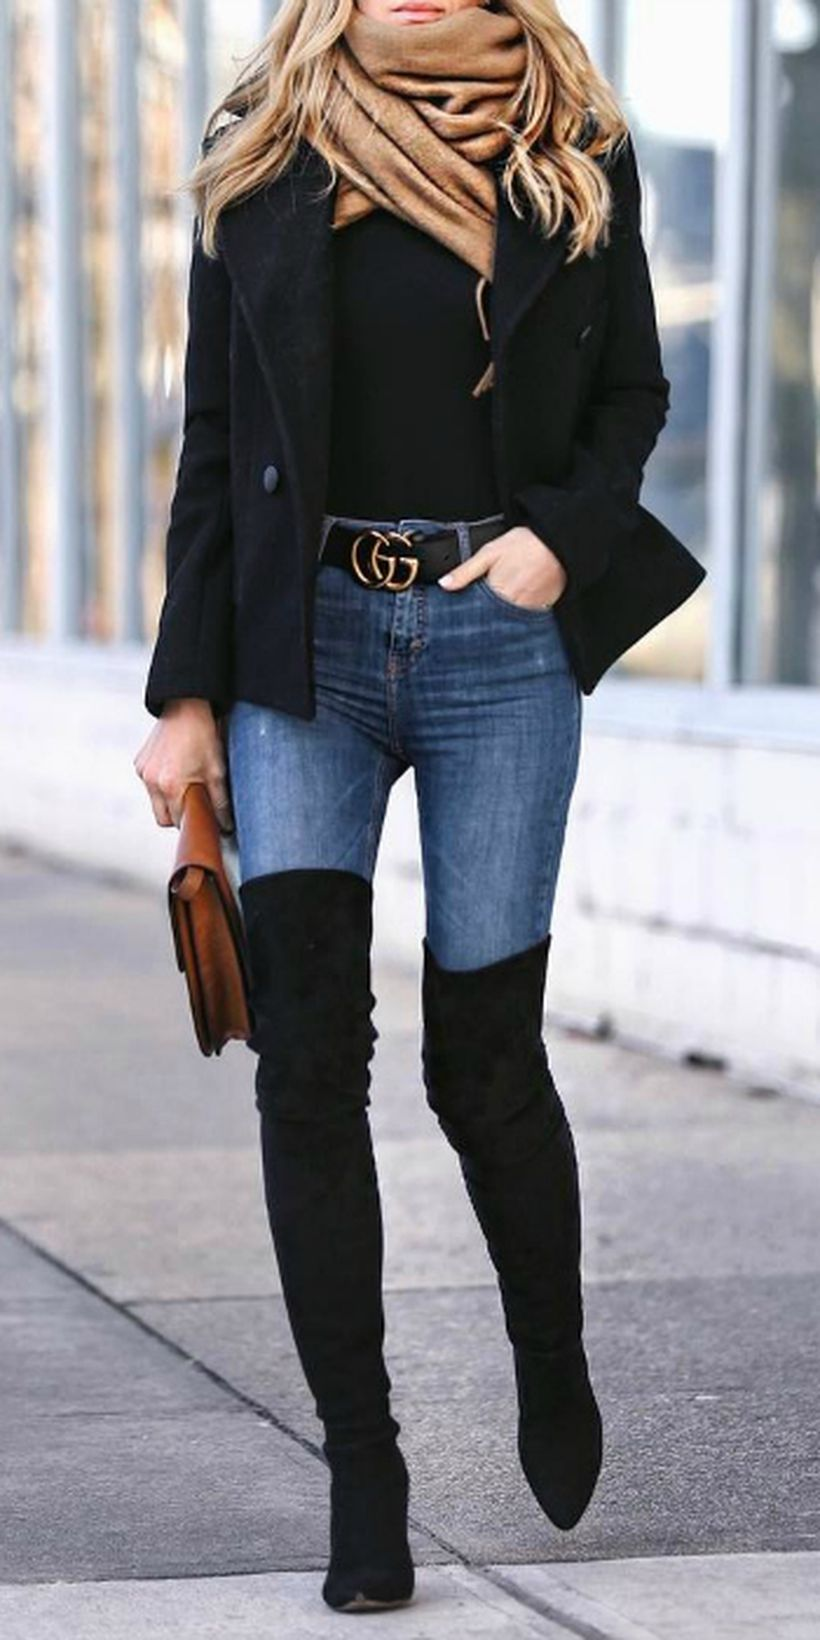 Fashionable outfit style for winter 2017 65